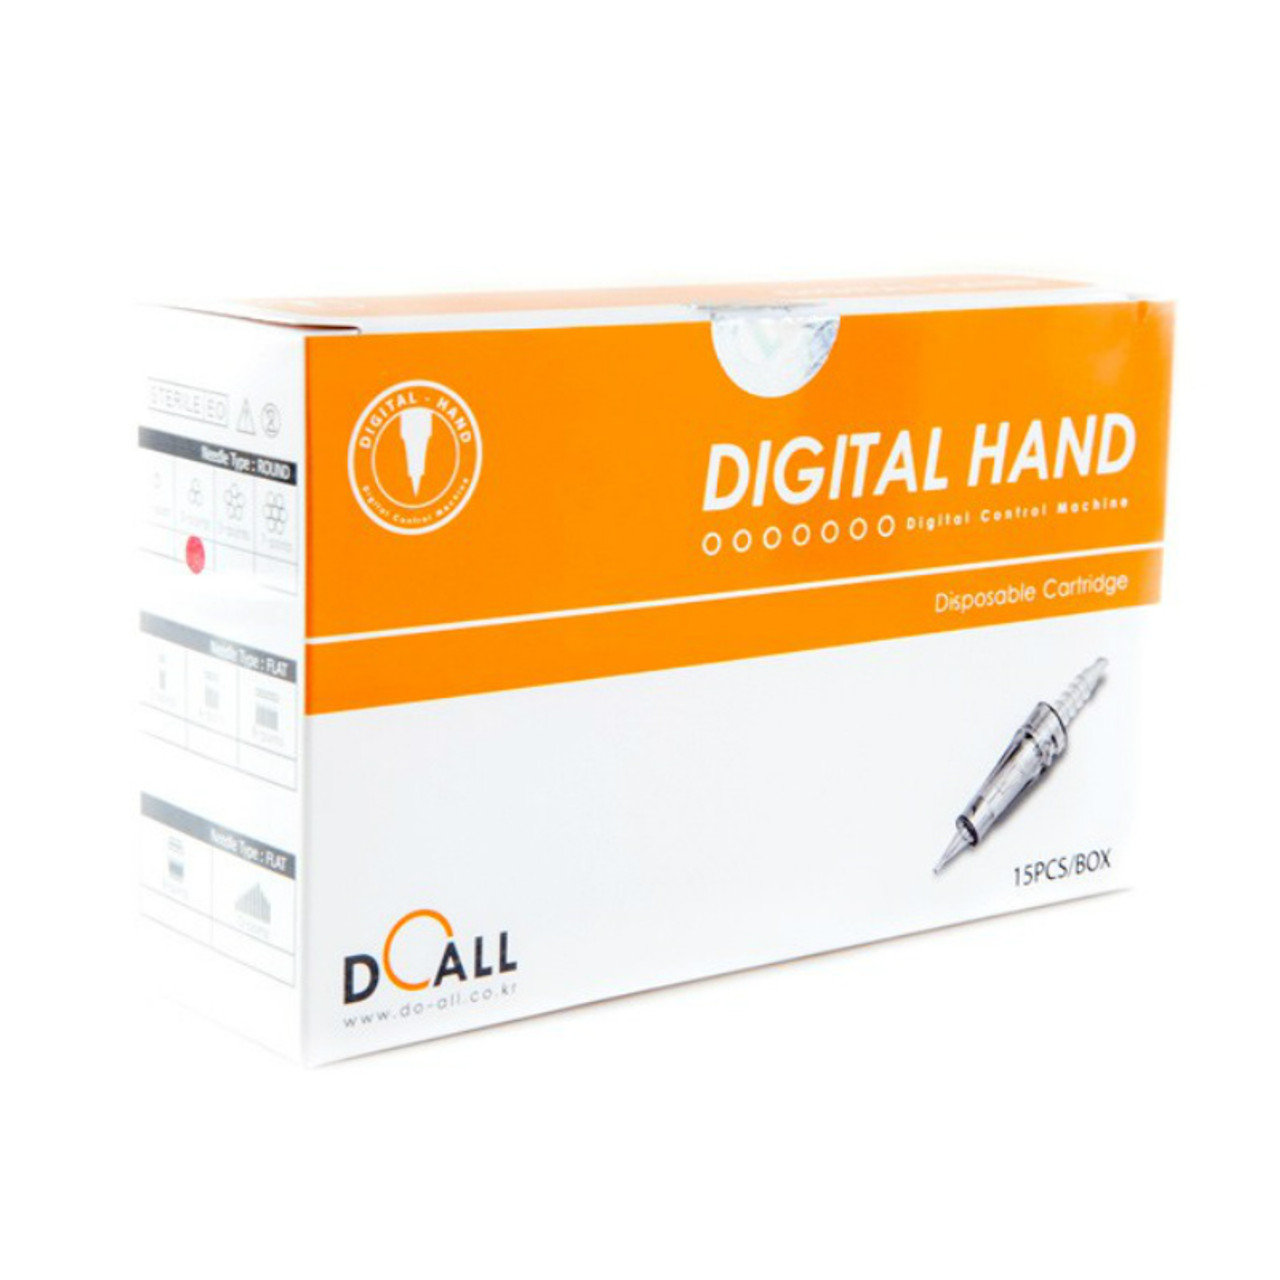 Do-All Digital Permanent Makeup (PMU) Cartridge Needle - 4F